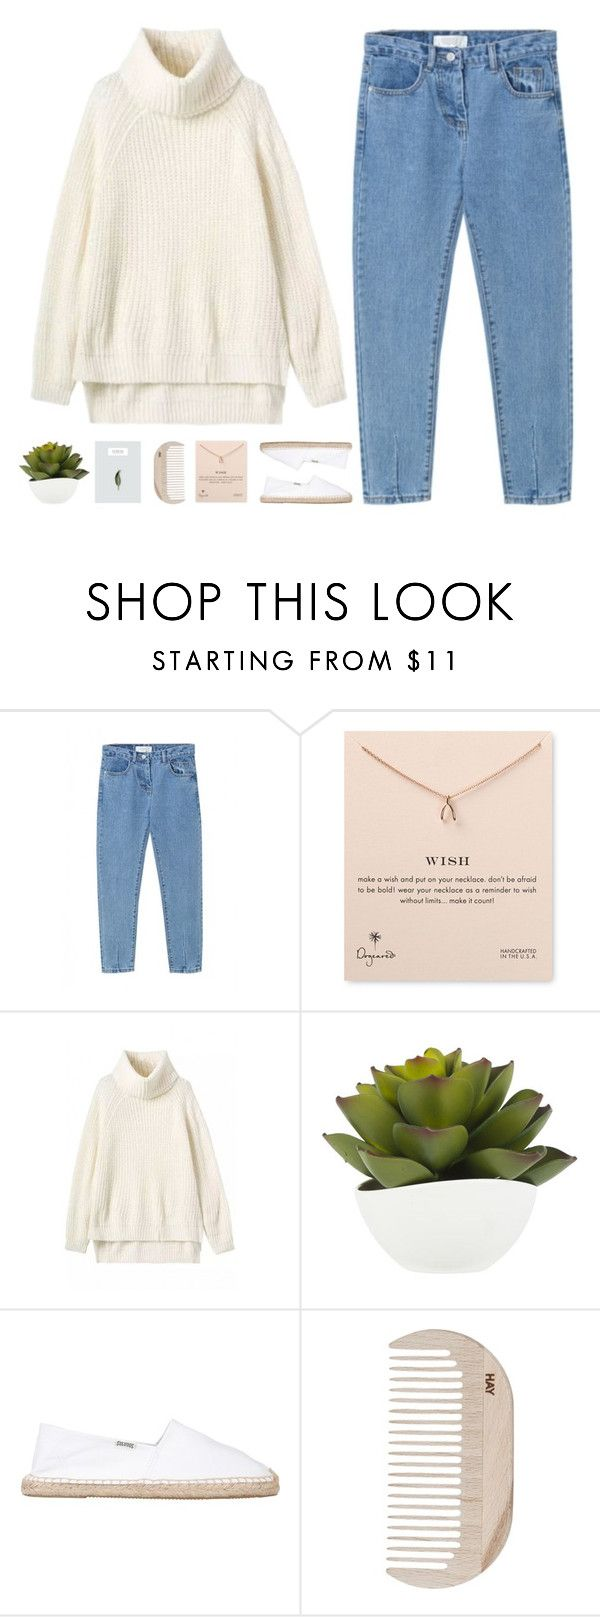 """""""i know it's a game, but what are we playing"""" by silvanacavero ❤ liked on Polyvore featuring Dogeared, Soludos, HAY, women's clothing, women, female, woman, misses and juniors"""